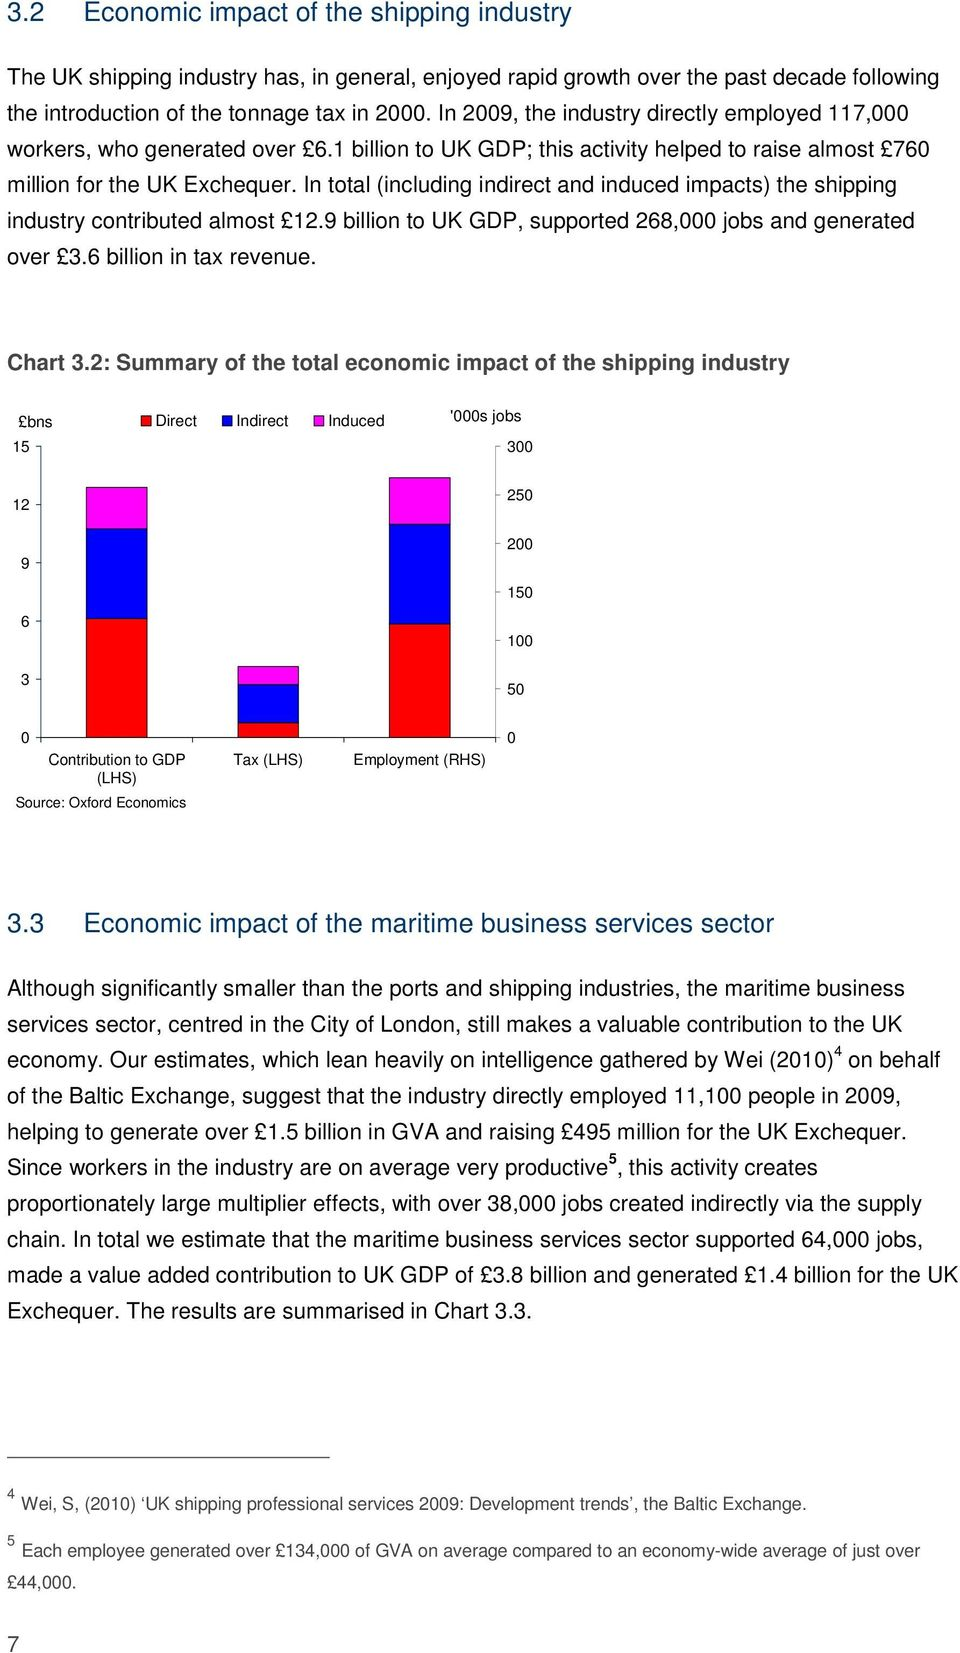 In total (including indirect and induced impacts) the shipping industry contributed almost 12.9 billion to UK GDP, supported 268,000 jobs and generated over 3.6 billion in tax revenue. Chart 3.